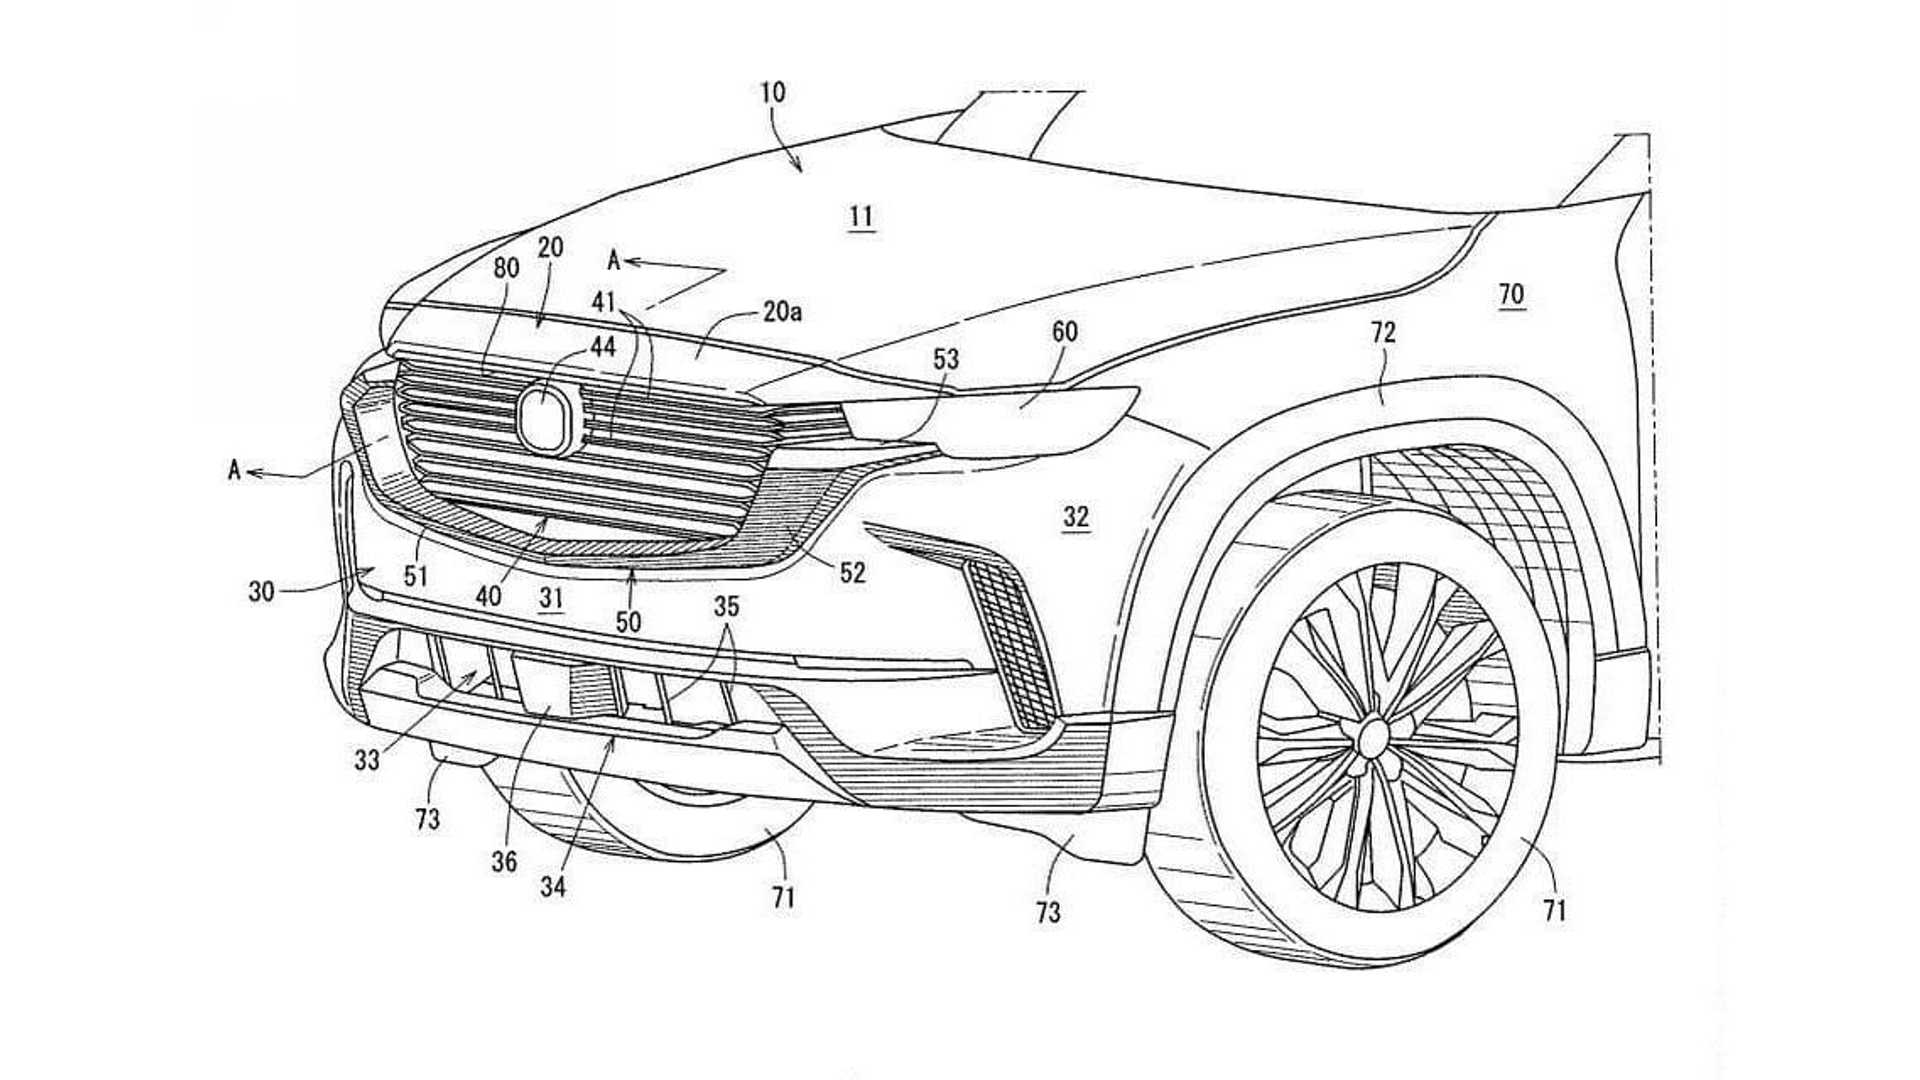 Recently published patent blueprints depict an off-roader with Mazda-esque looks, but no specifics accompanying the images. We think it might be the CX-50, a crossover SUV Mazda officially announced a week ago.